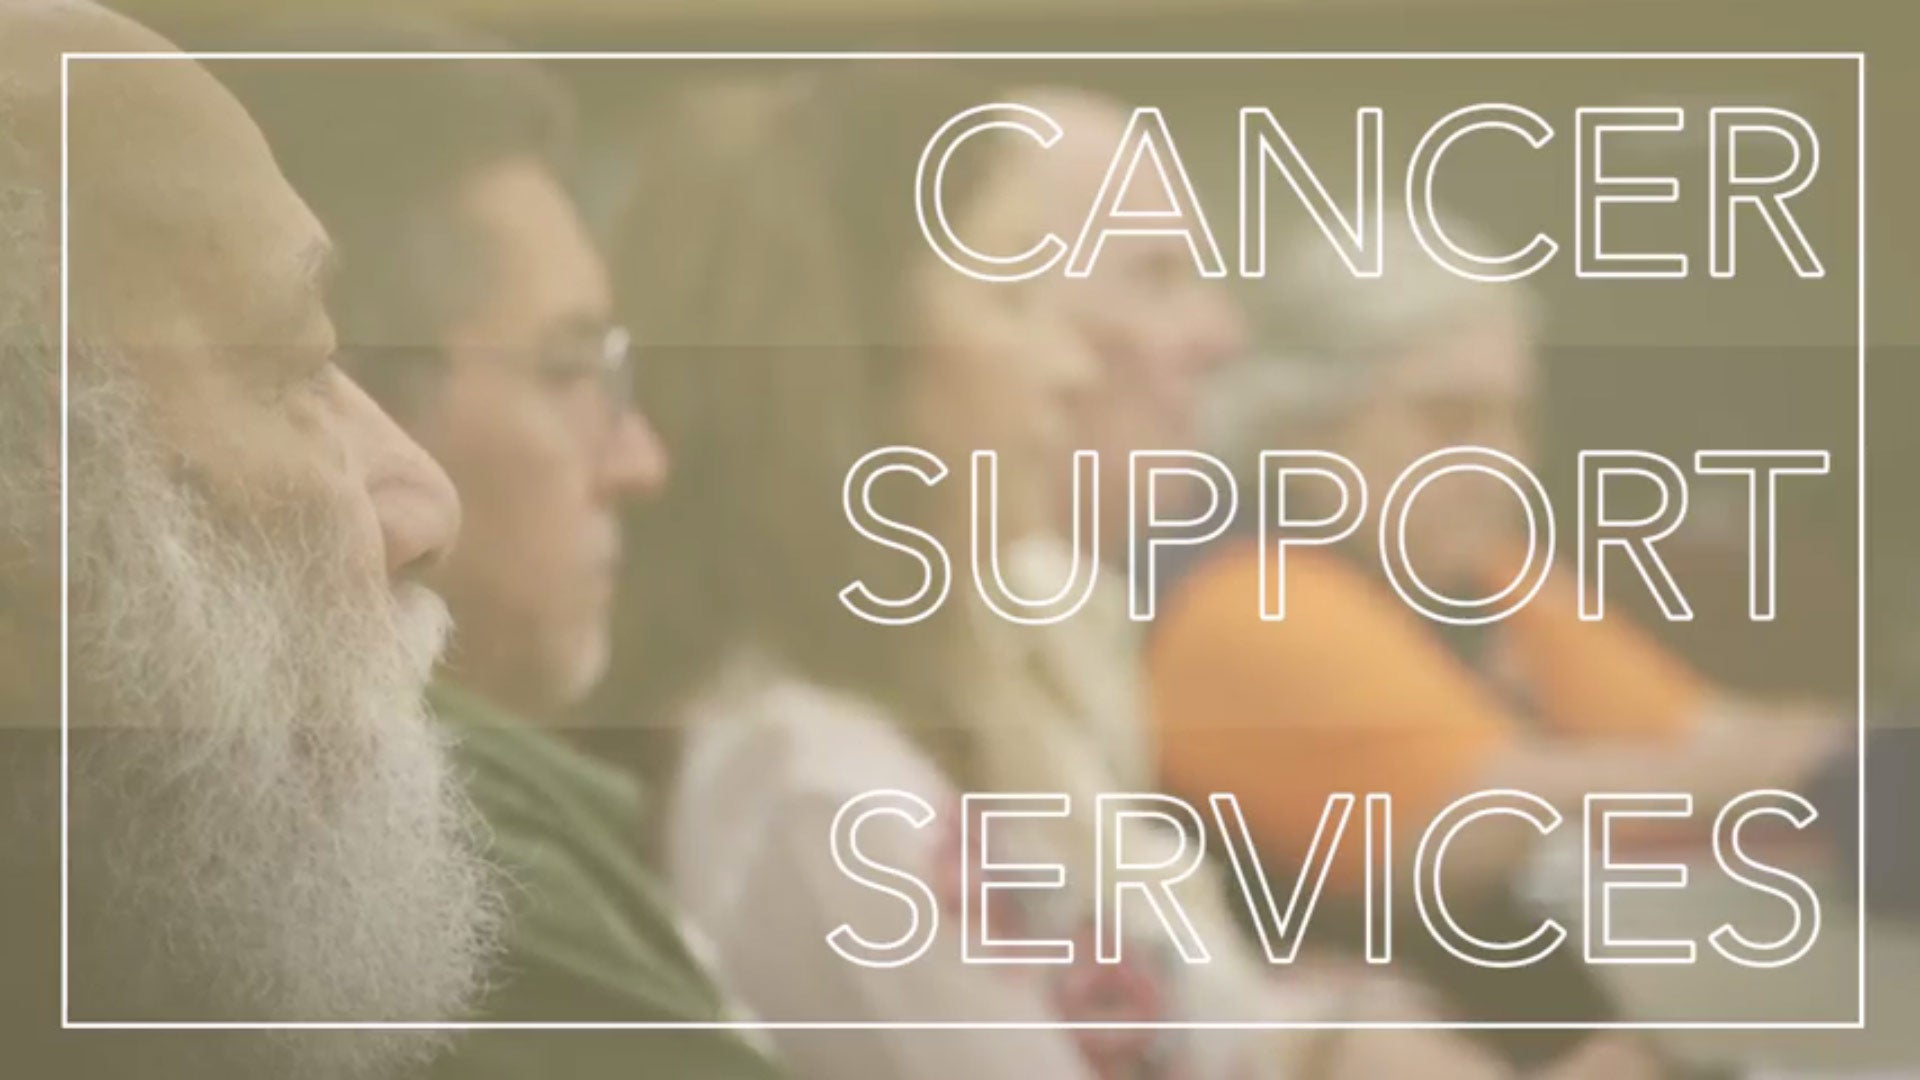 BMC Cancer Support Services